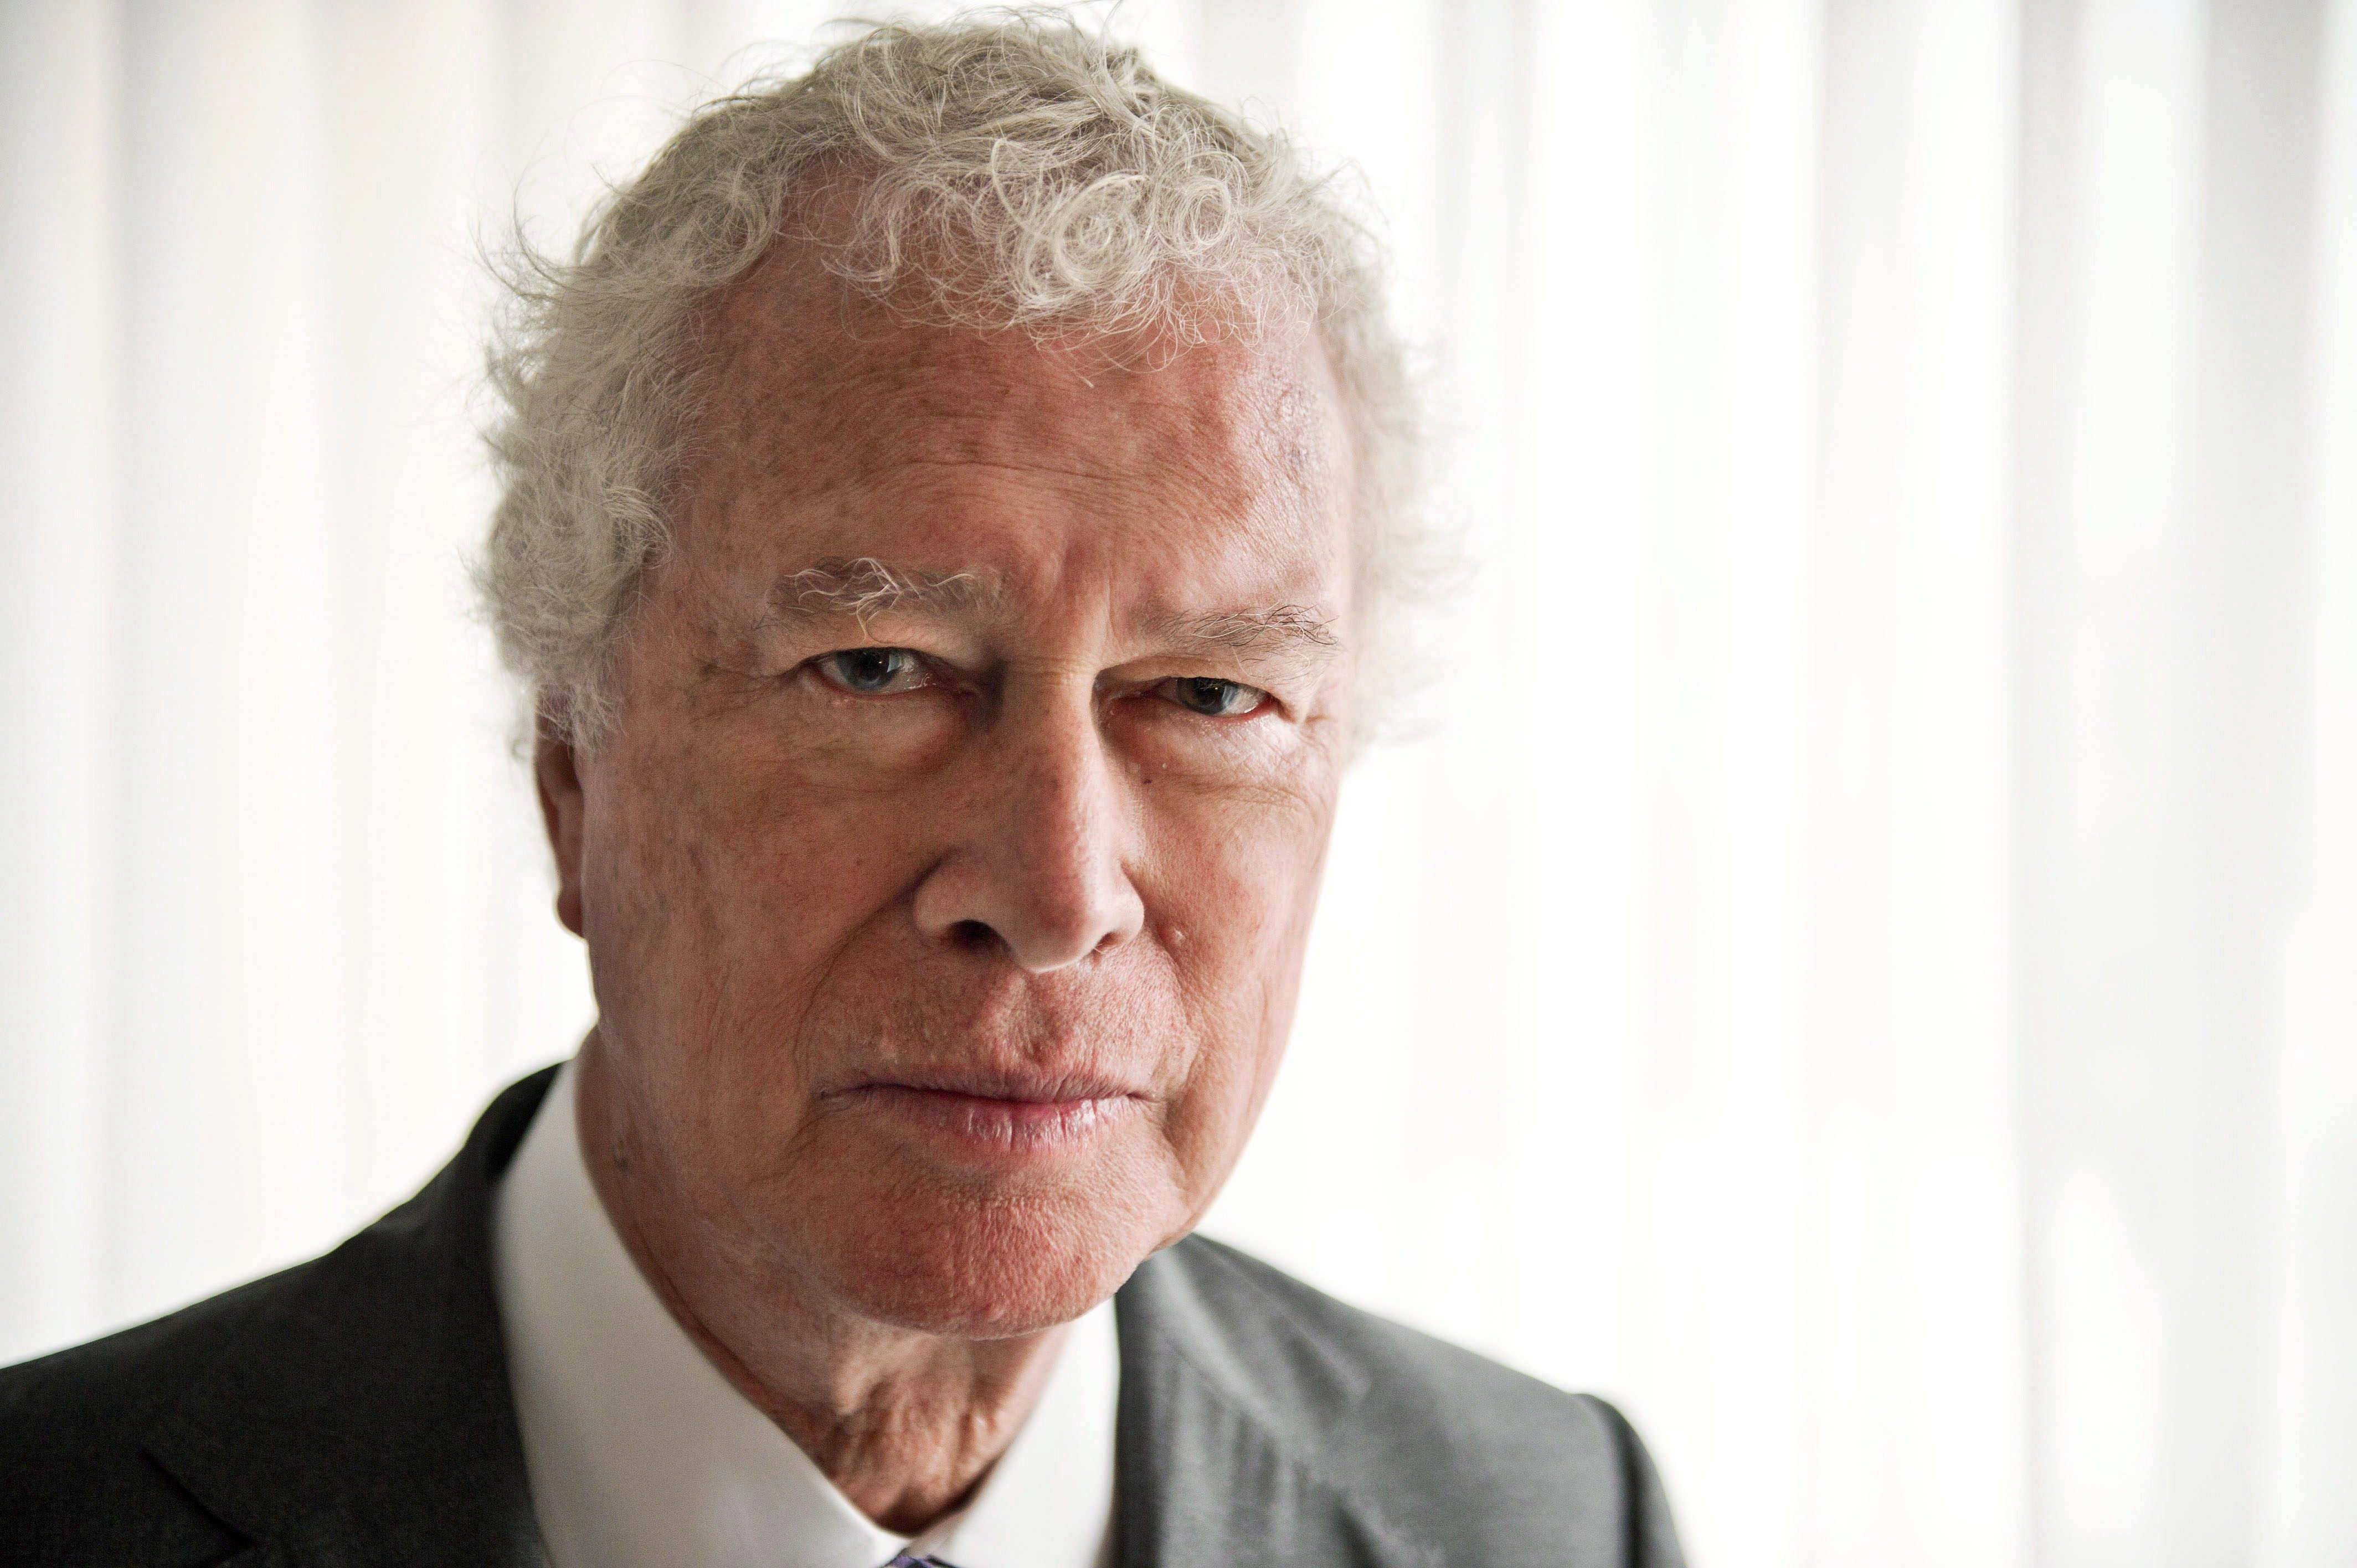 Ken Taylor, former Canadian ambassador to Iran, in Toronto, Canada on Sept. 12, 2013.